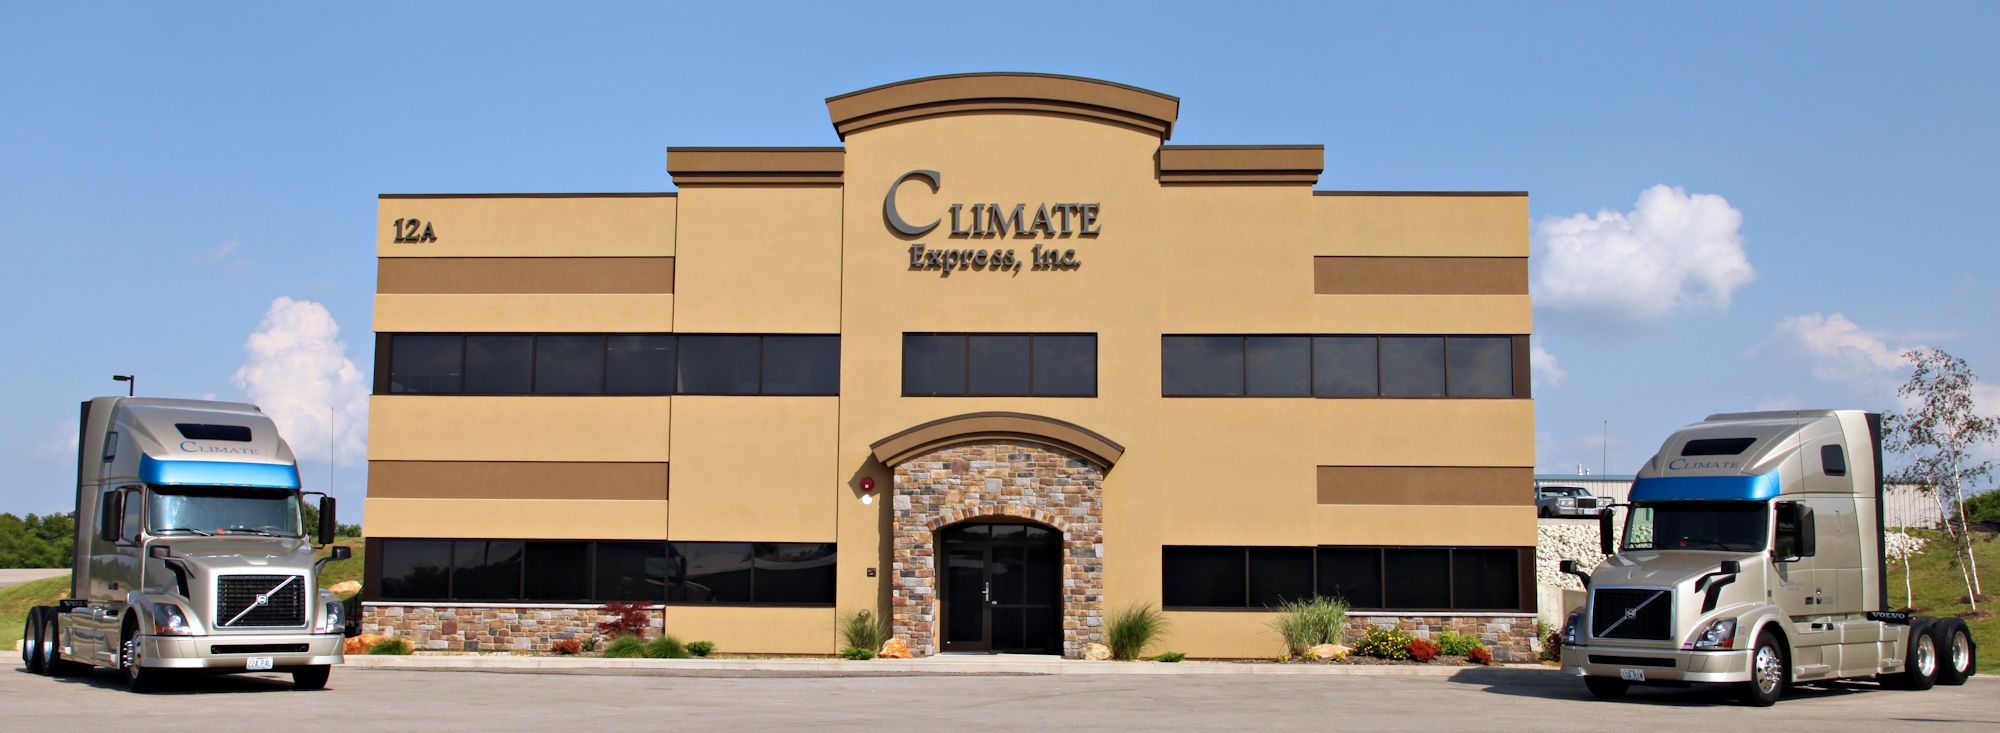 climate-express-corporate-headquarters